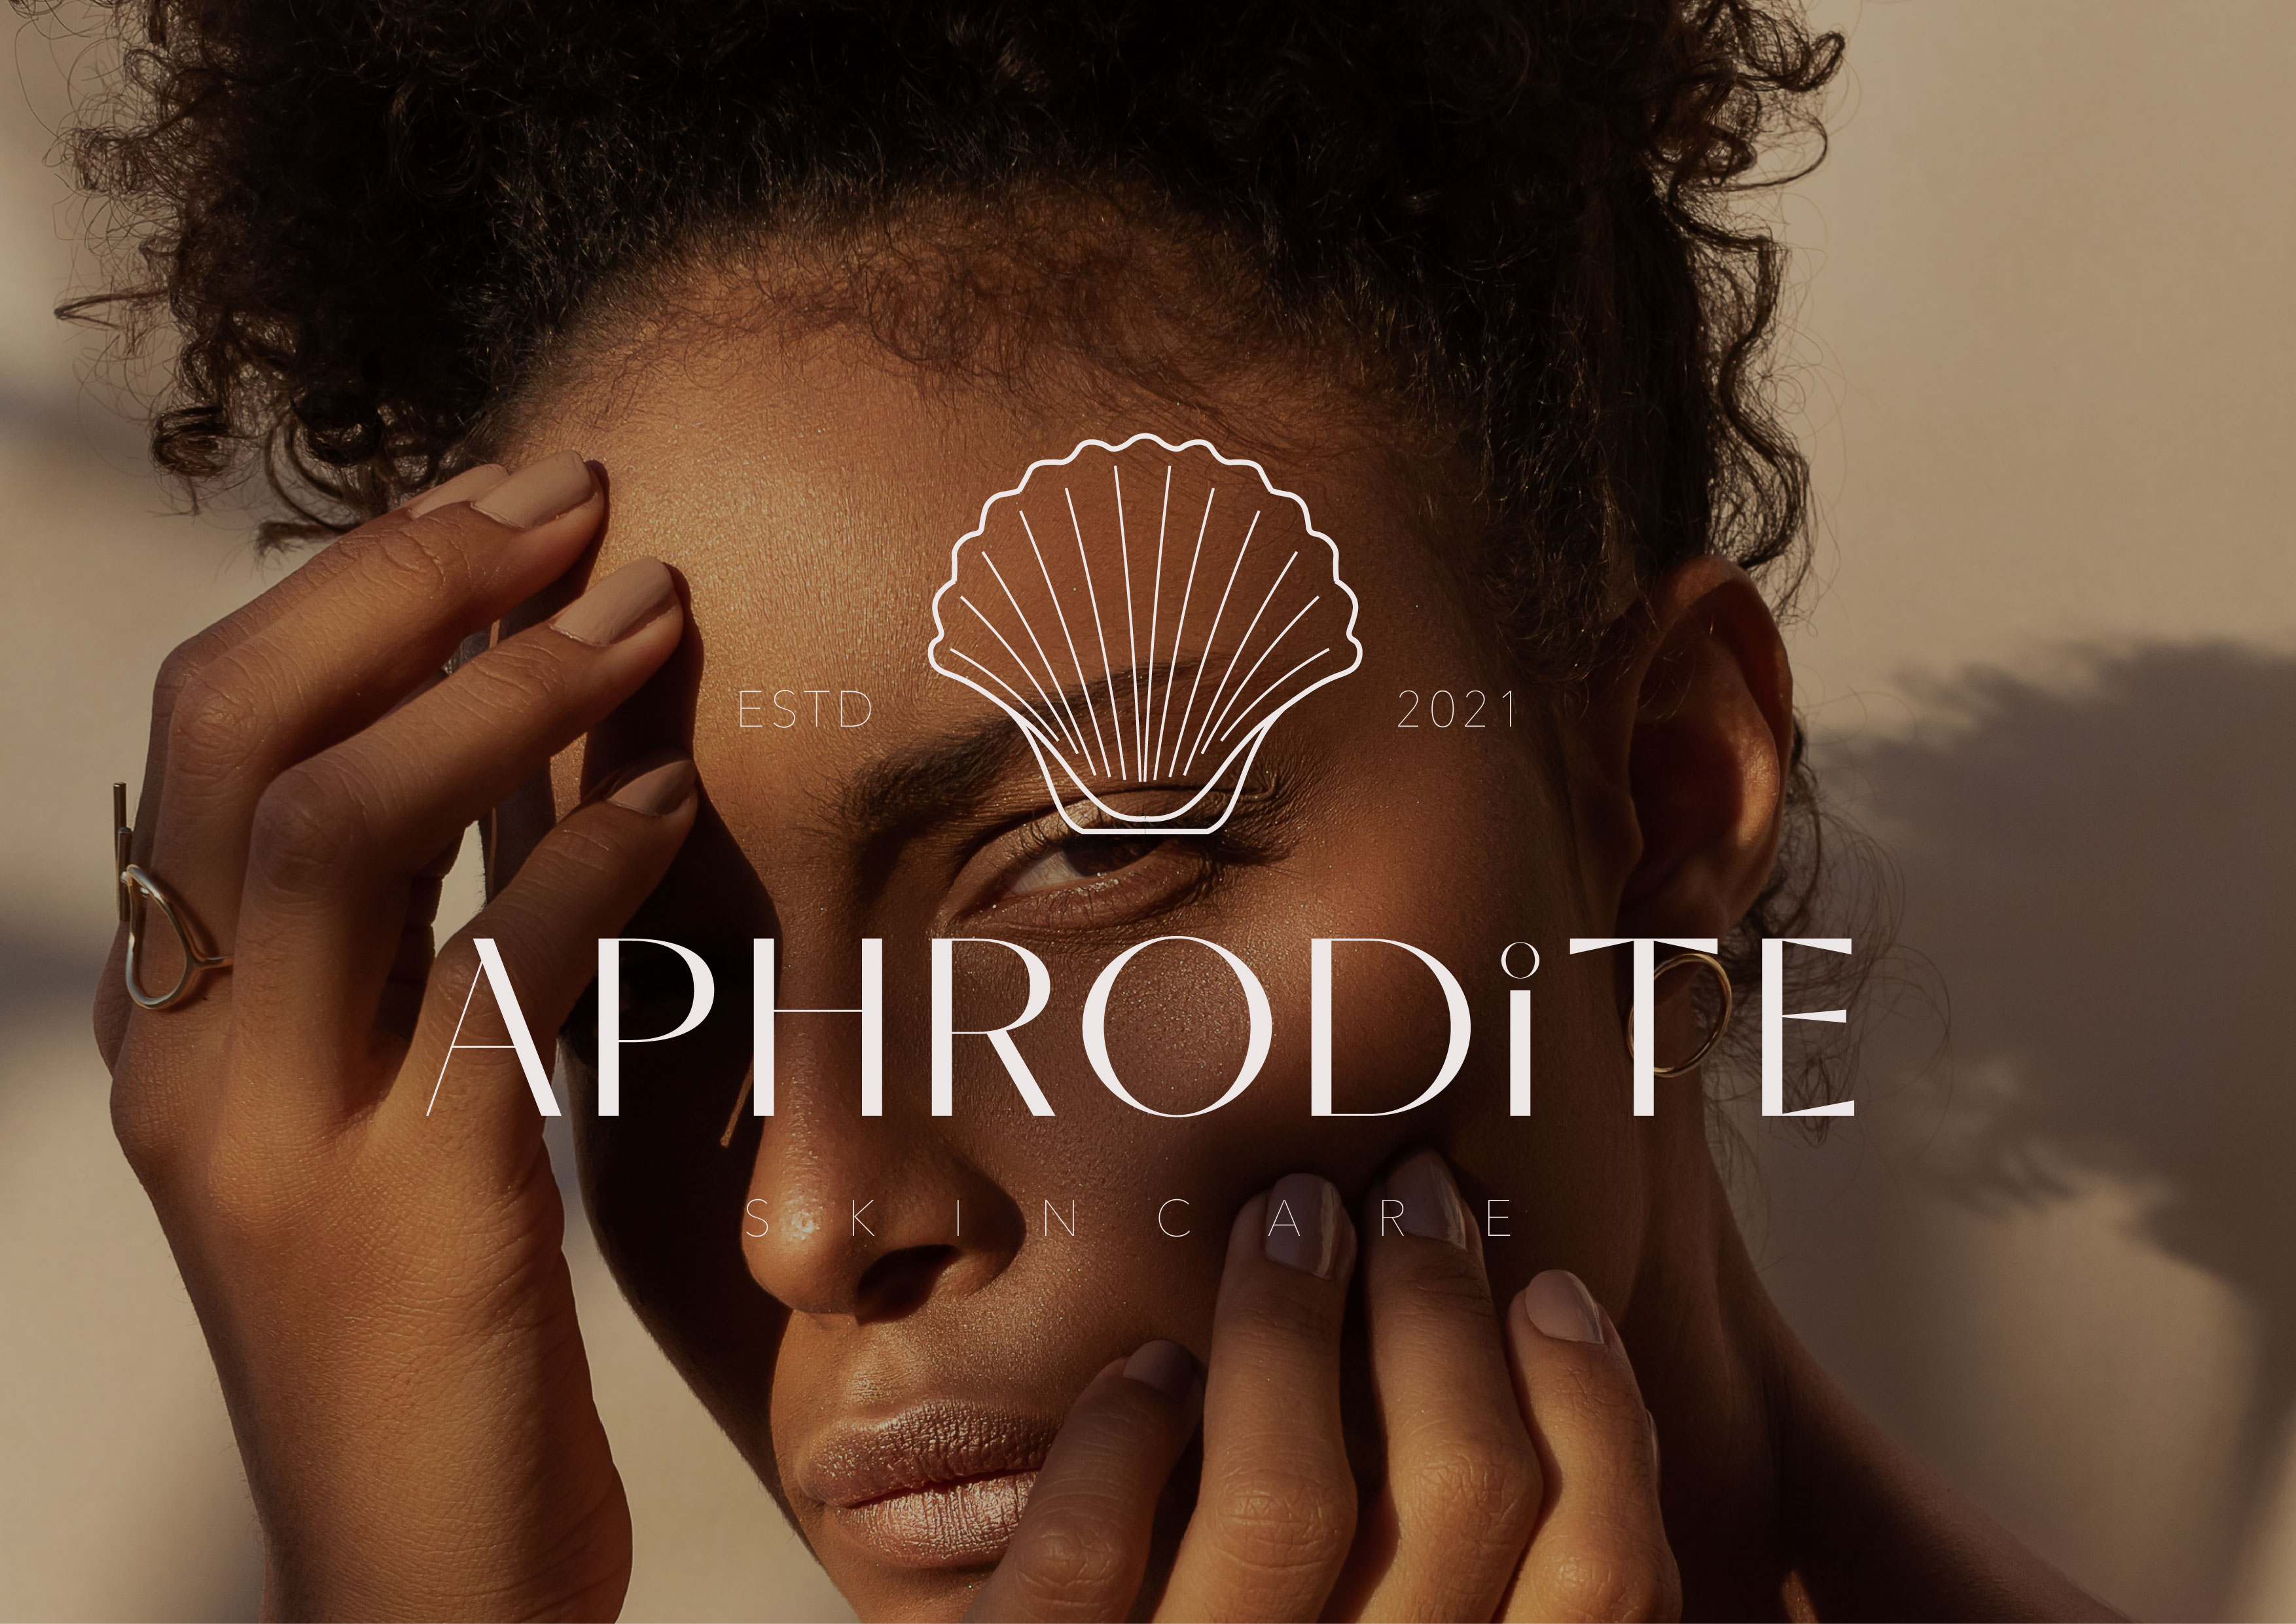 Aphrodite Skincare Brand and Packaging Concept Designed by Kanushi Rathore